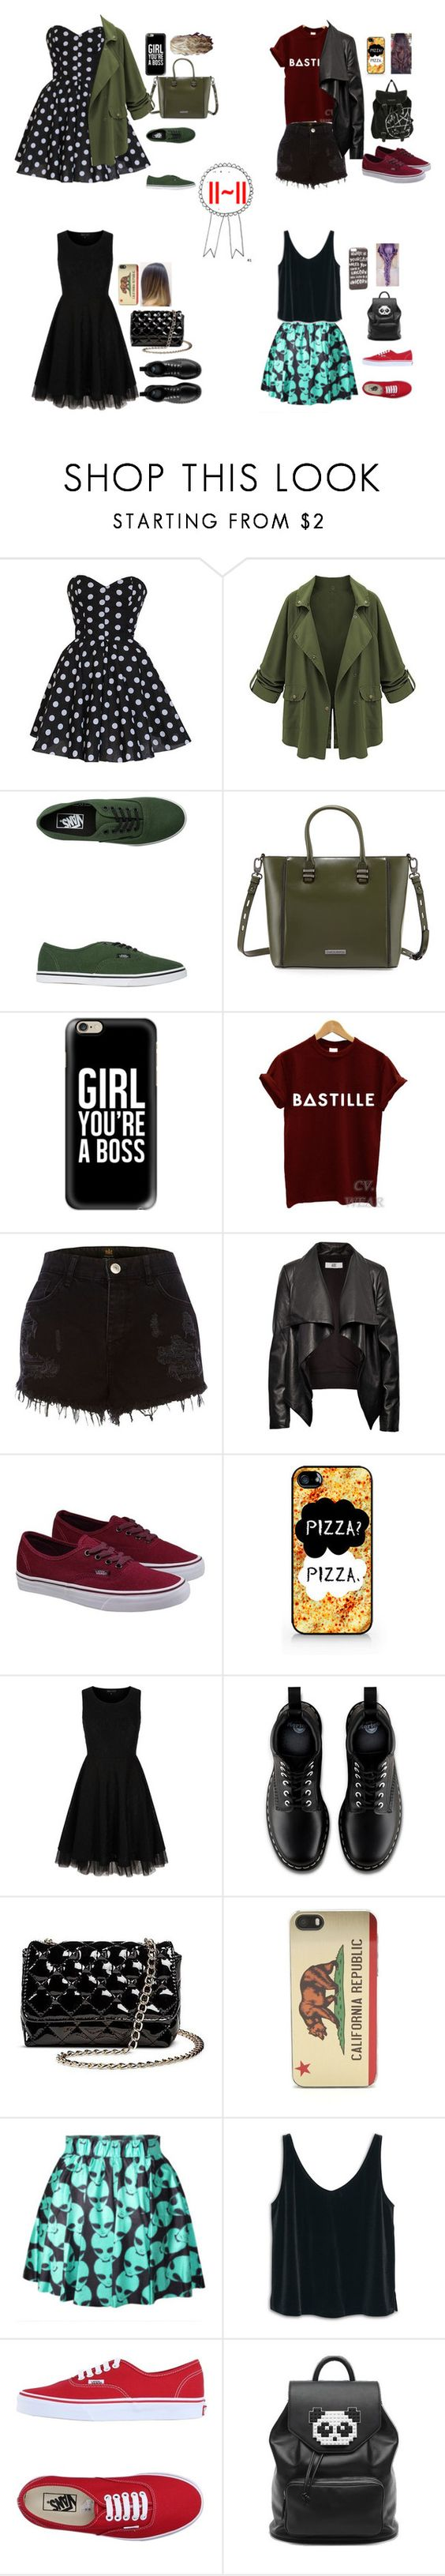 """""""We got stuff to do--I . A"""" by magconxkylee ❤ liked on Polyvore featuring Vans, Charles Jourdan, Casetify, INDIE HAIR, River Island, HIDE, Samsung, Yumi, Dr. Martens and Betseyville"""